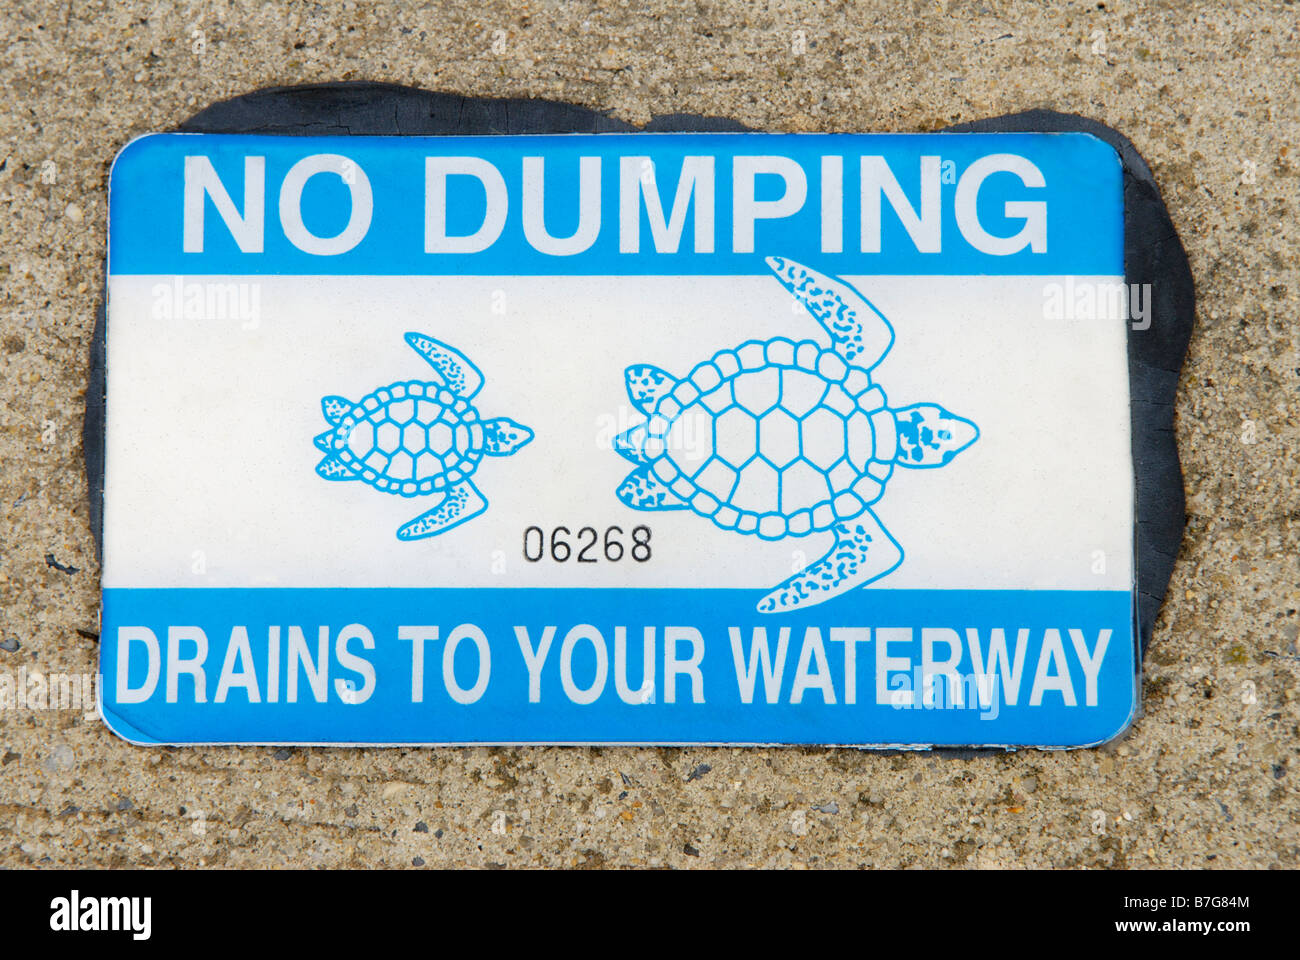 Storm drain decal warning against pollution dumping - Stock Image